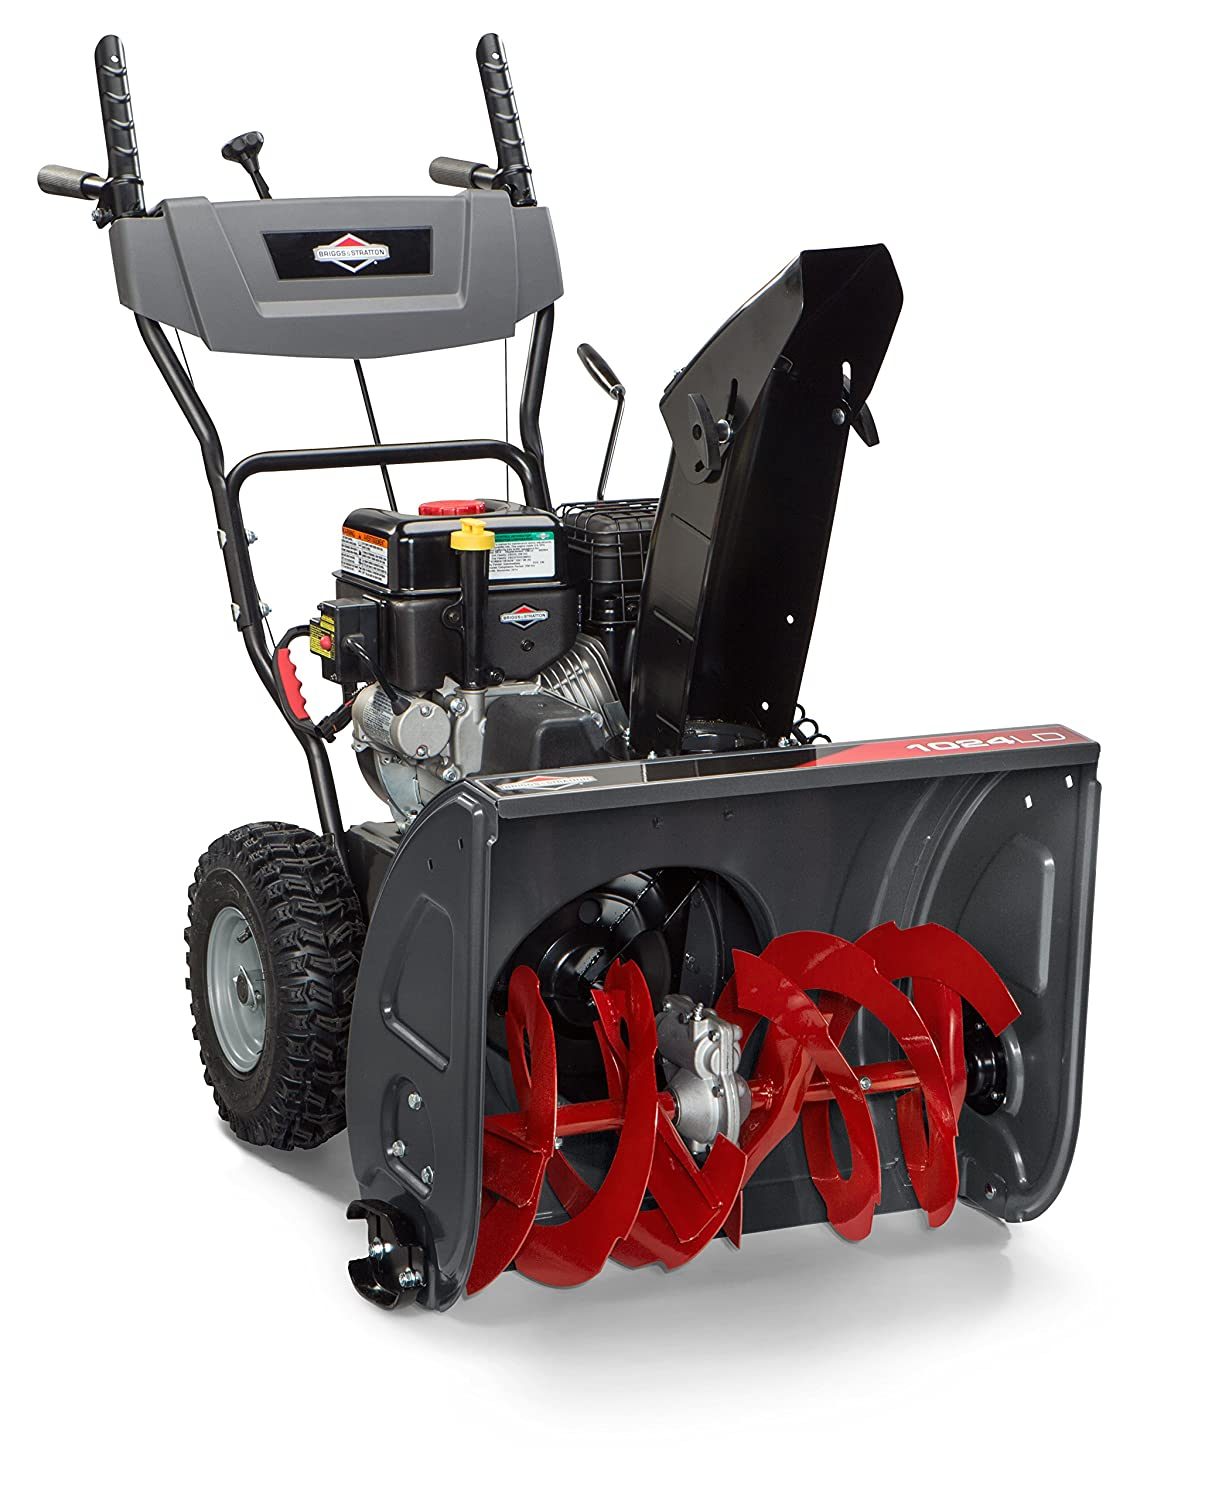 Amazon briggs stratton 1696610 dual stage snow thrower amazon briggs stratton 1696610 dual stage snow thrower with 208cc engine and electric start 24 garden outdoor sciox Image collections